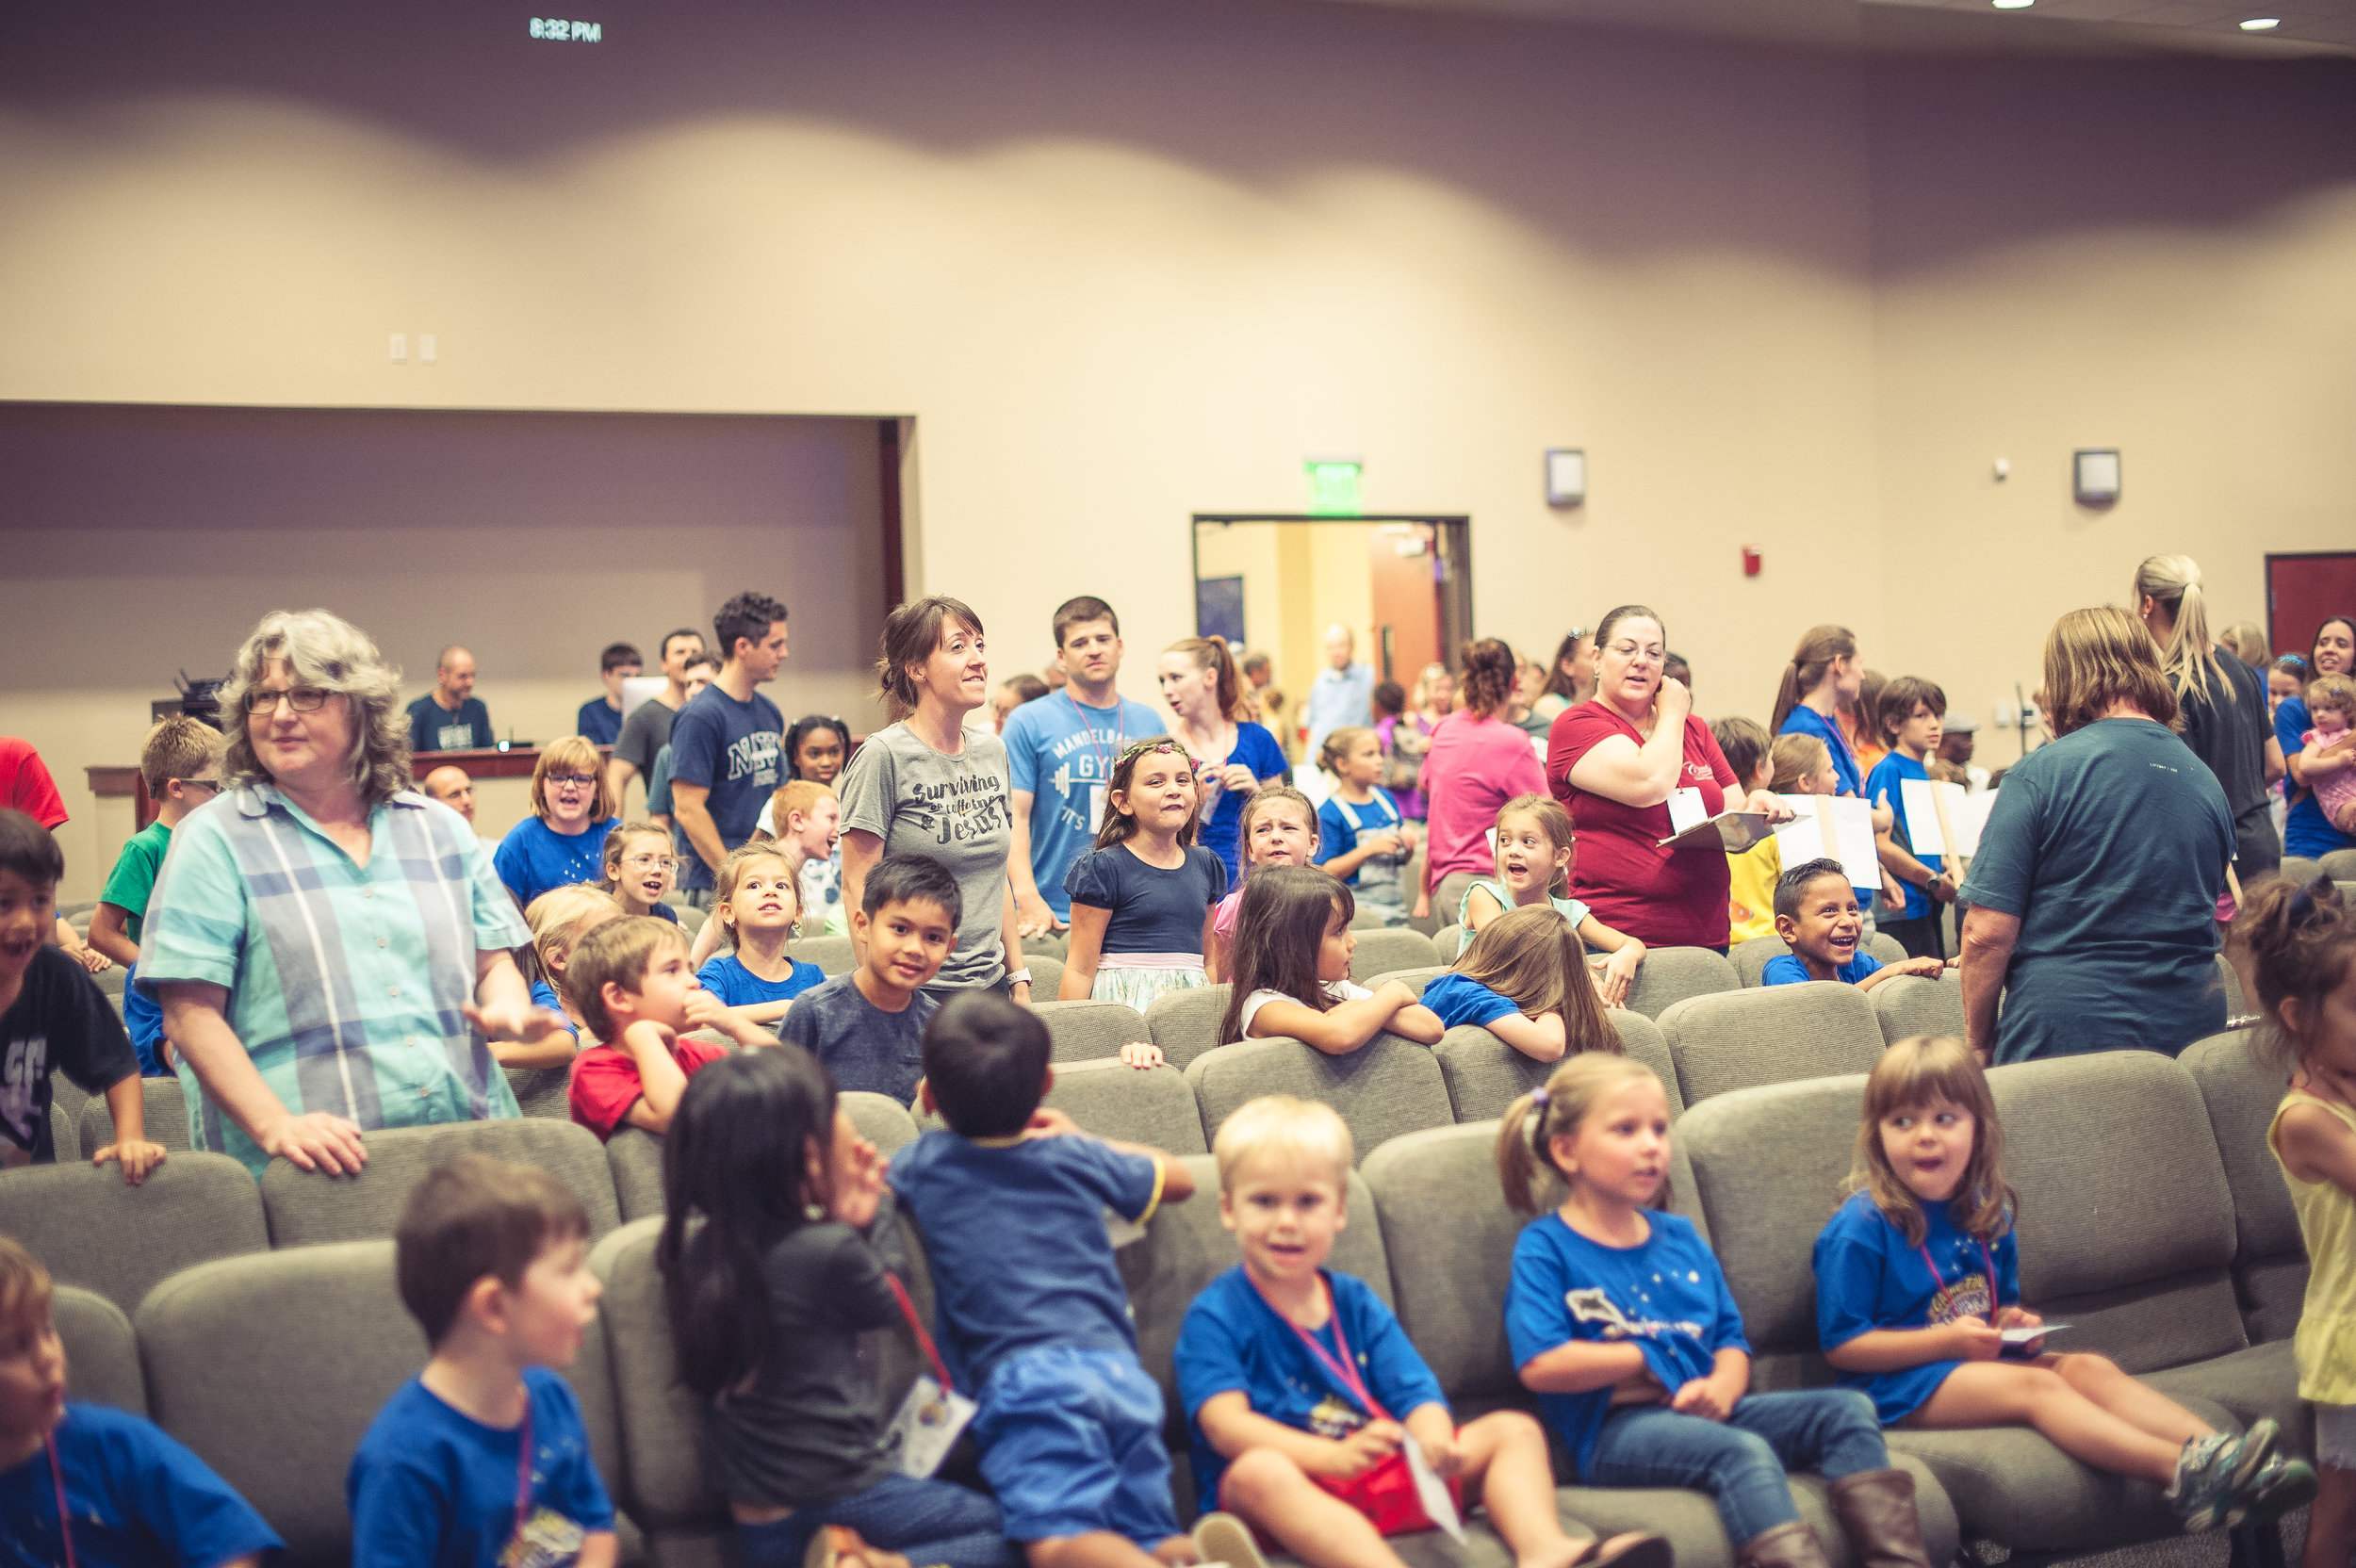 Awana - AWANA happens Sunday evenings from 5:30-7:00pm, September thru June.  The acronym A.W.A.N.A. comes from the first letters of Approved Workmen Are Not Ashamed, taken from 2 Timothy 2:15. In this high-energy, exciting program, kids memorize Scripture, study the Bible, play games and learn about Jesus!